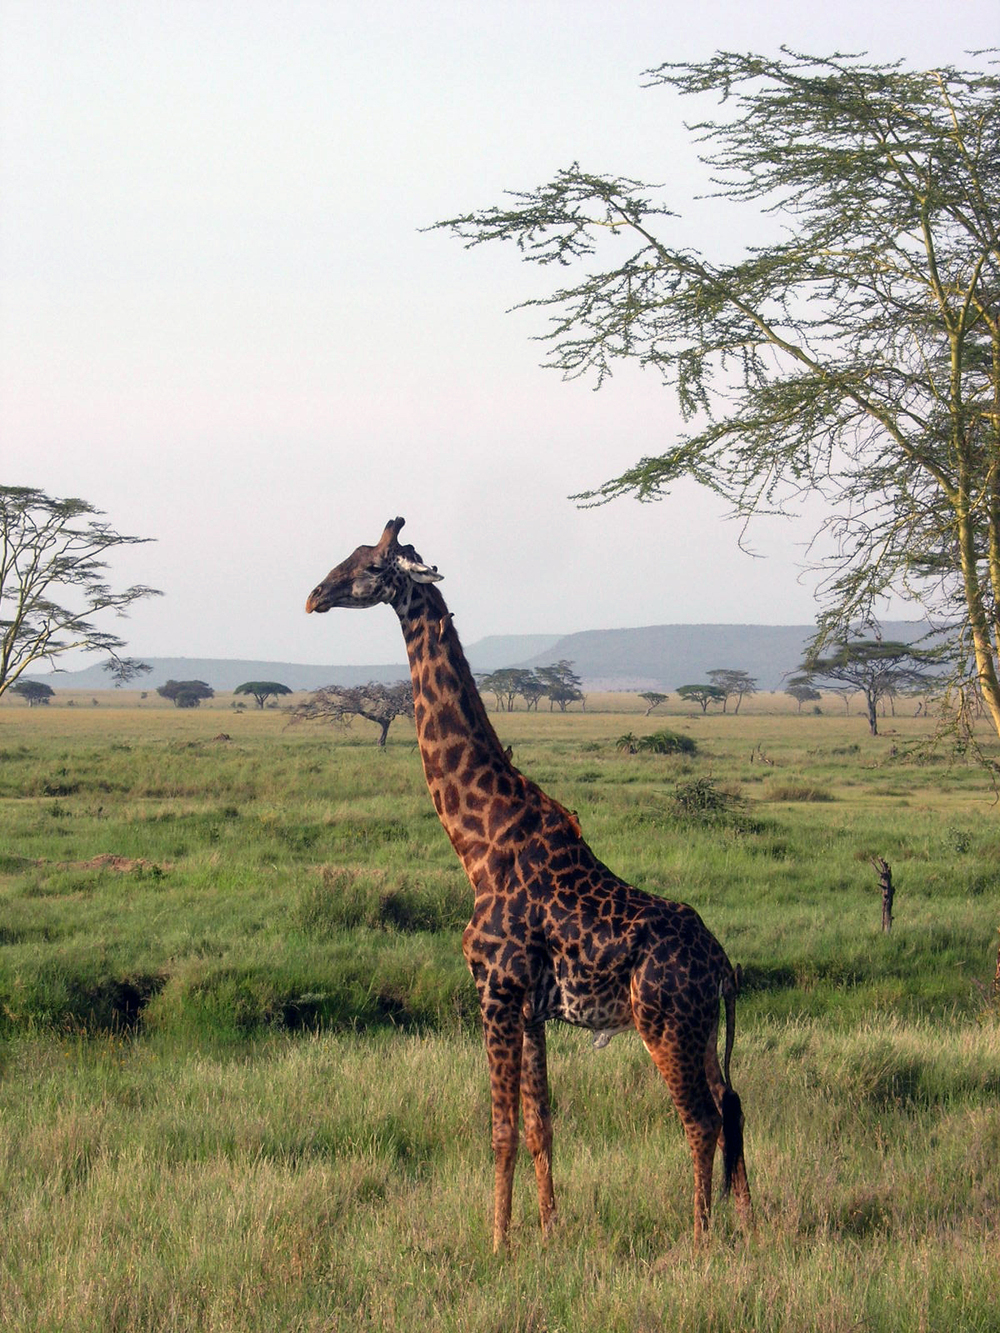 Giraffe with oxpeckers. Serengeti National Park, Tanzania, 2008.